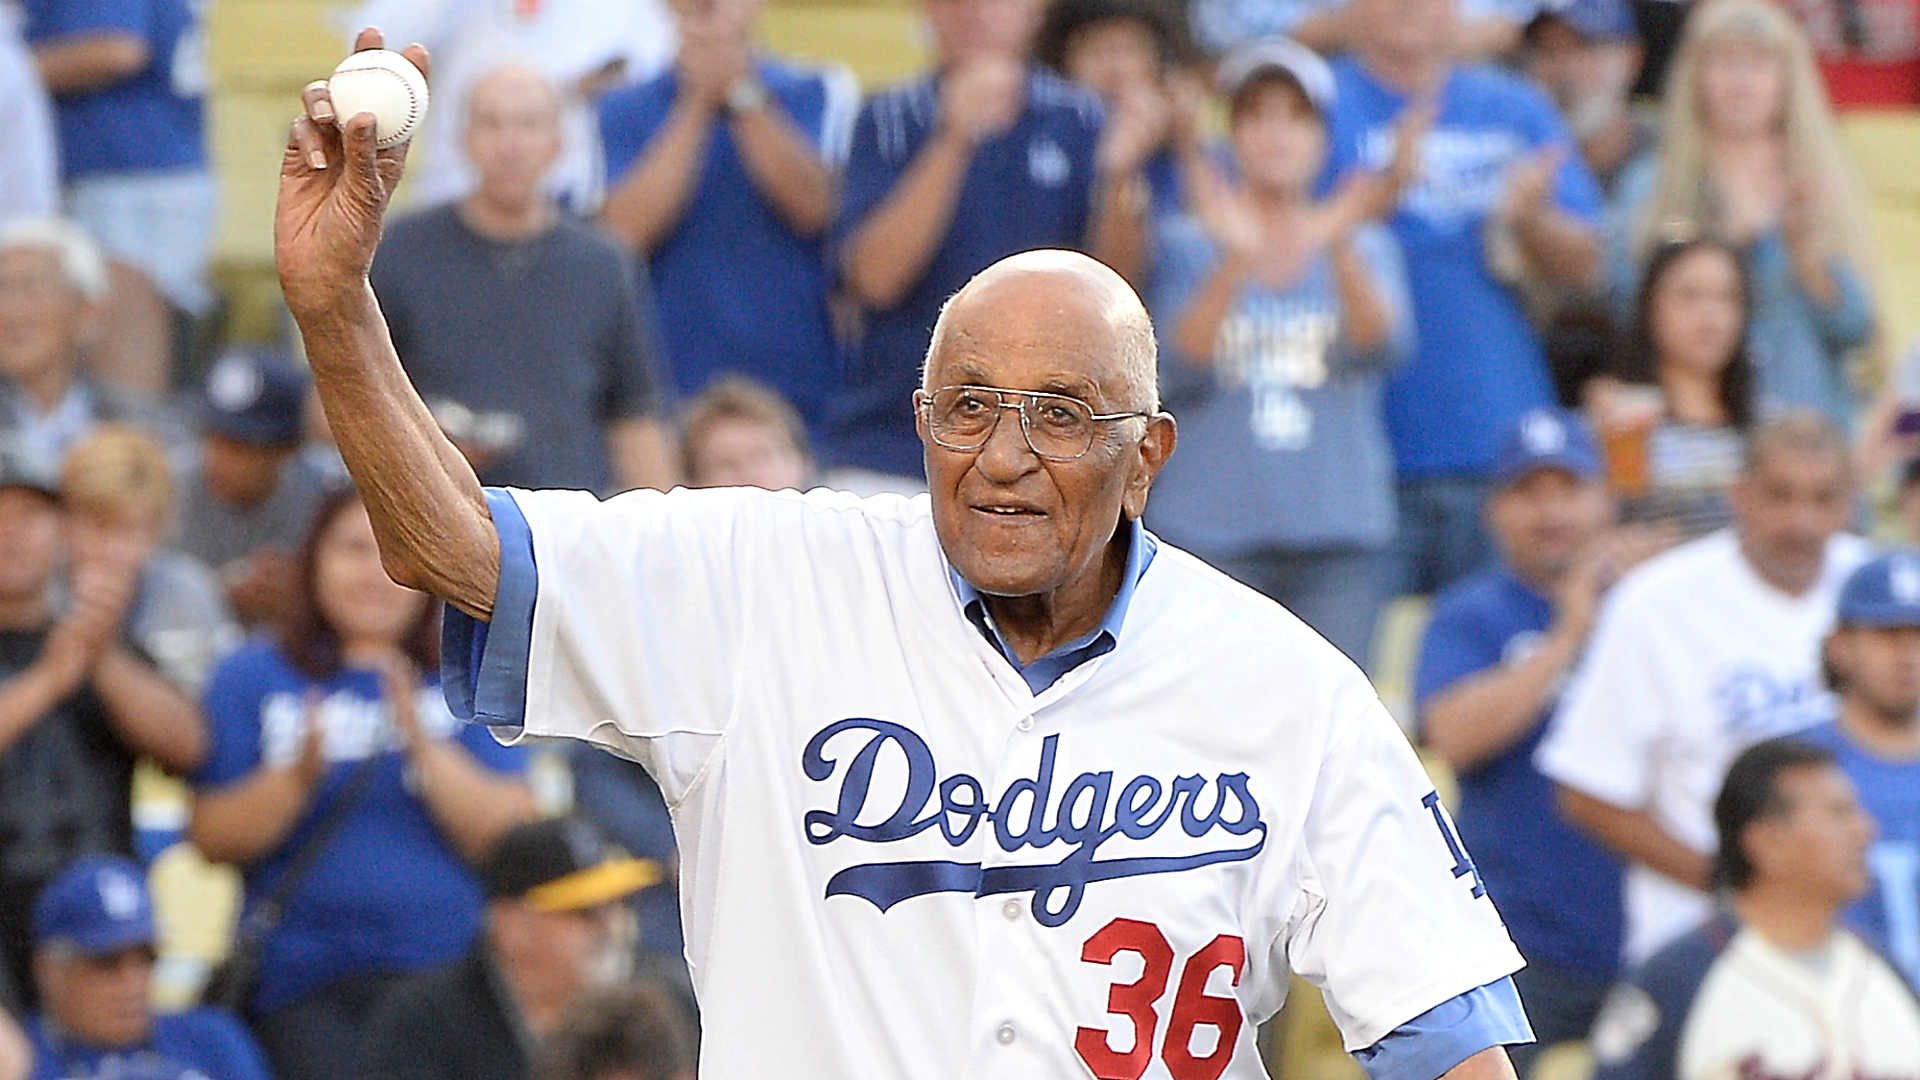 Dodgers Legend, Don Newcombe, Passes Away at the Age of 92